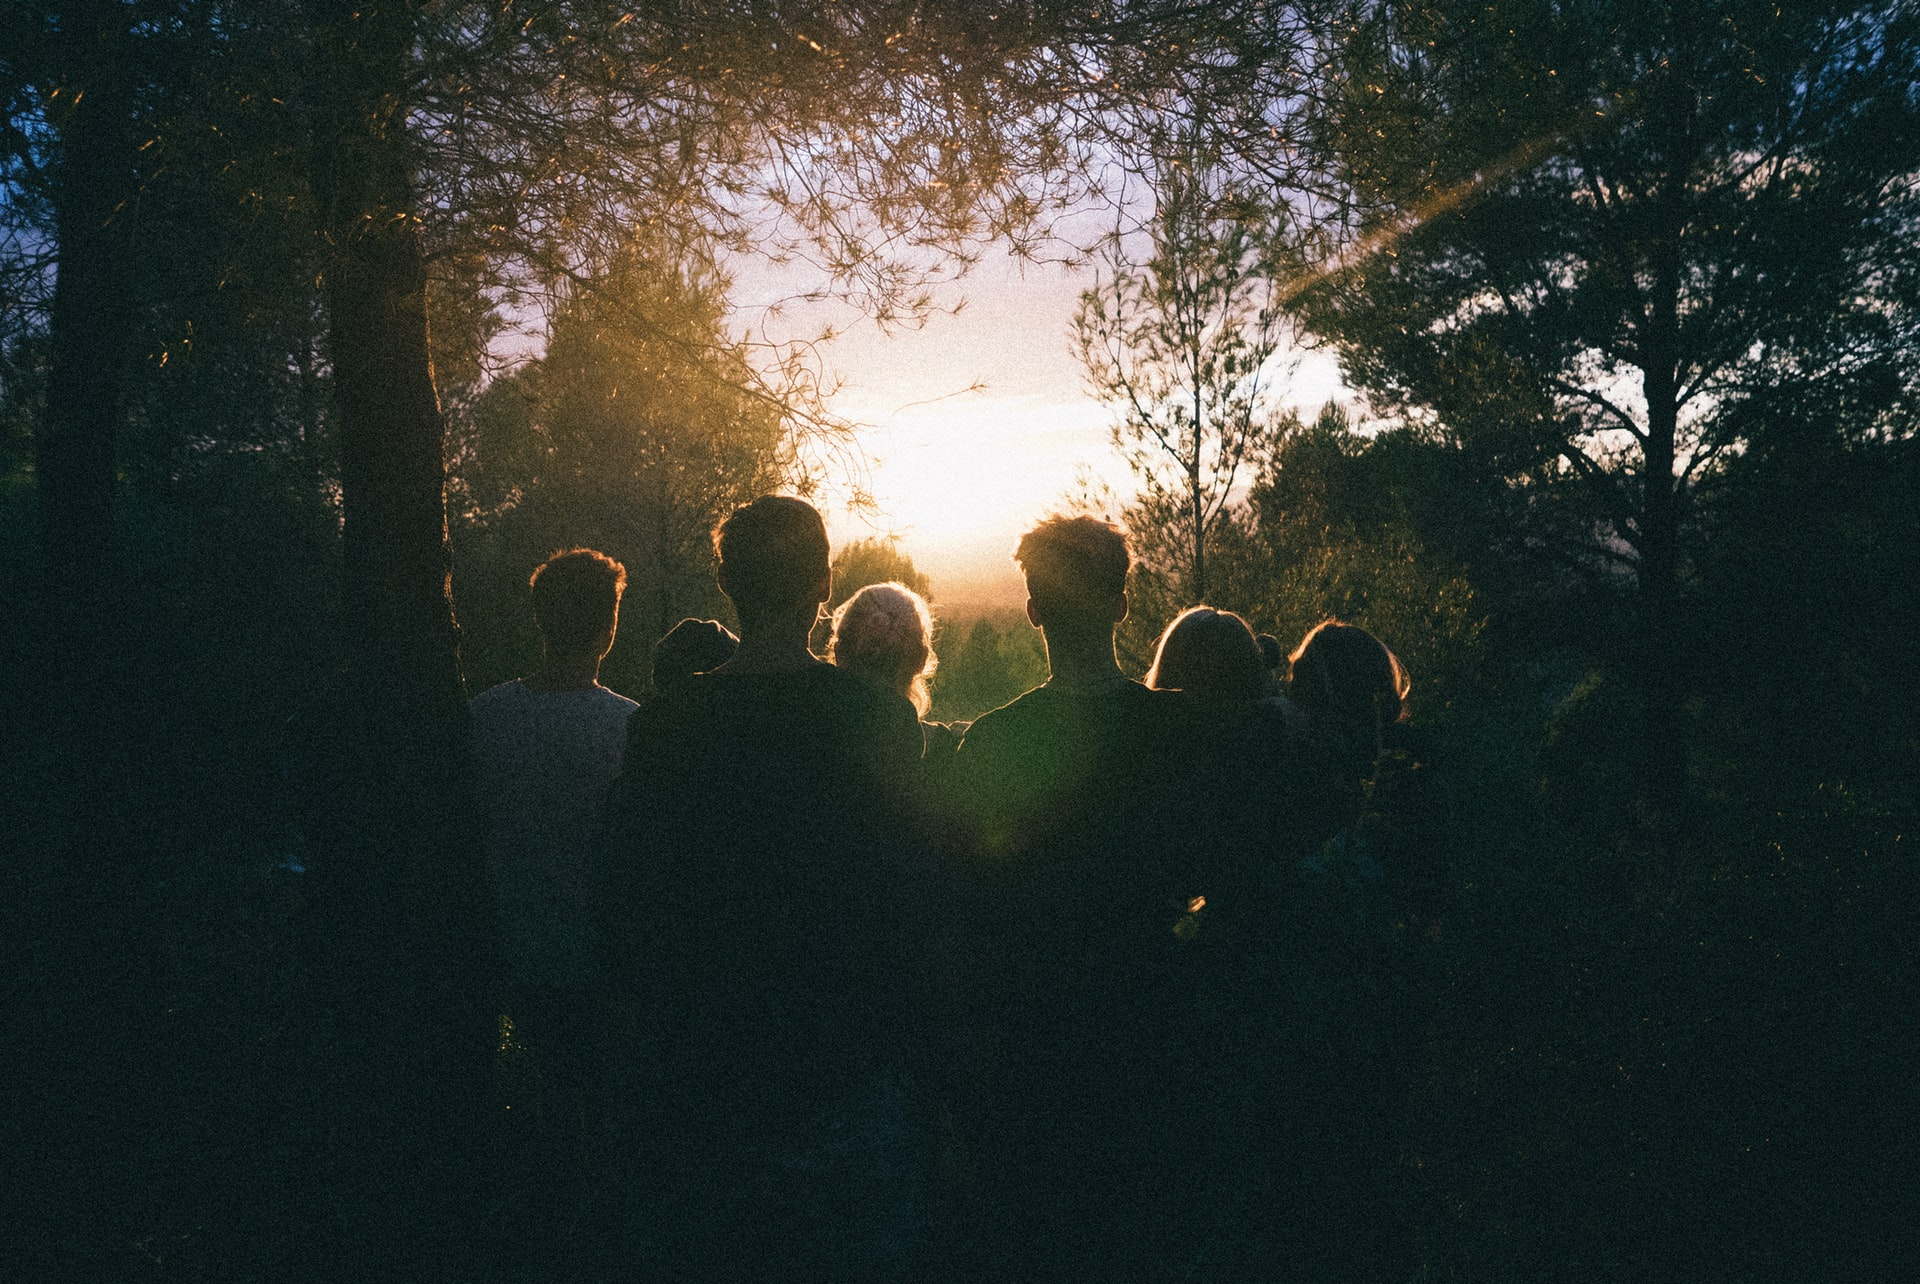 a group of people in a forest in shadows